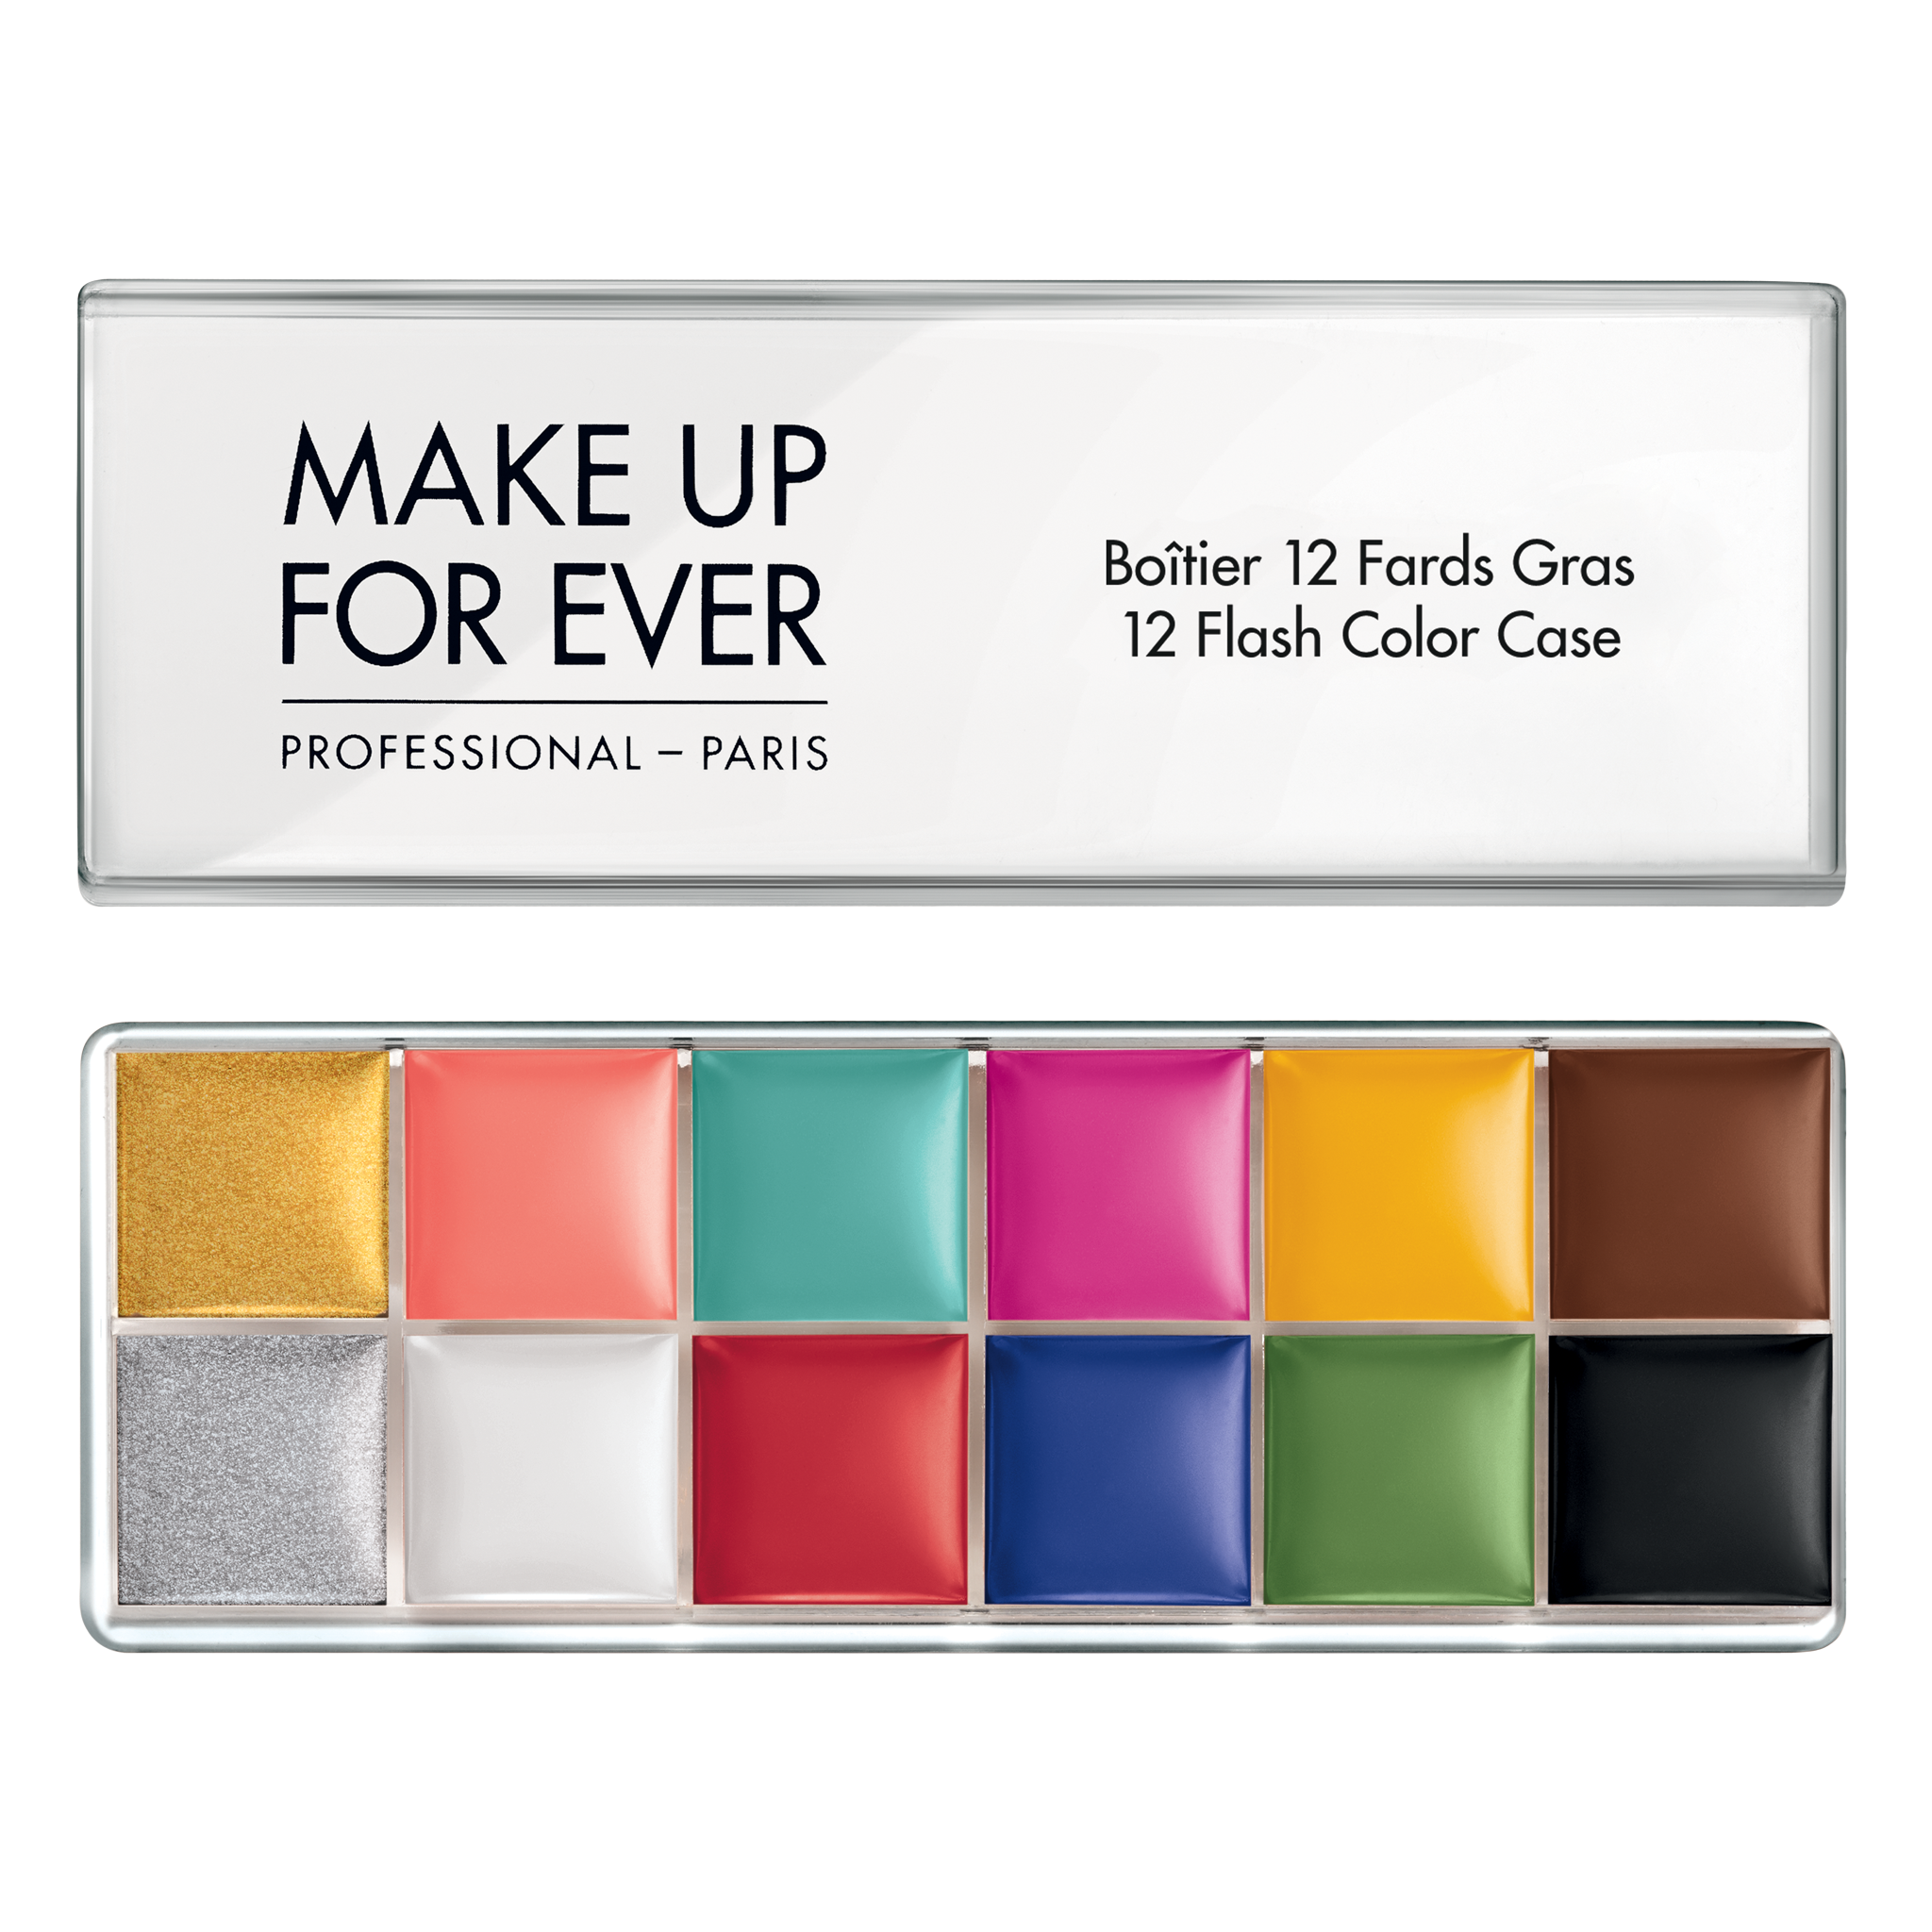 12 Flash Color Case Flash Colors MAKE UP FOR EVER